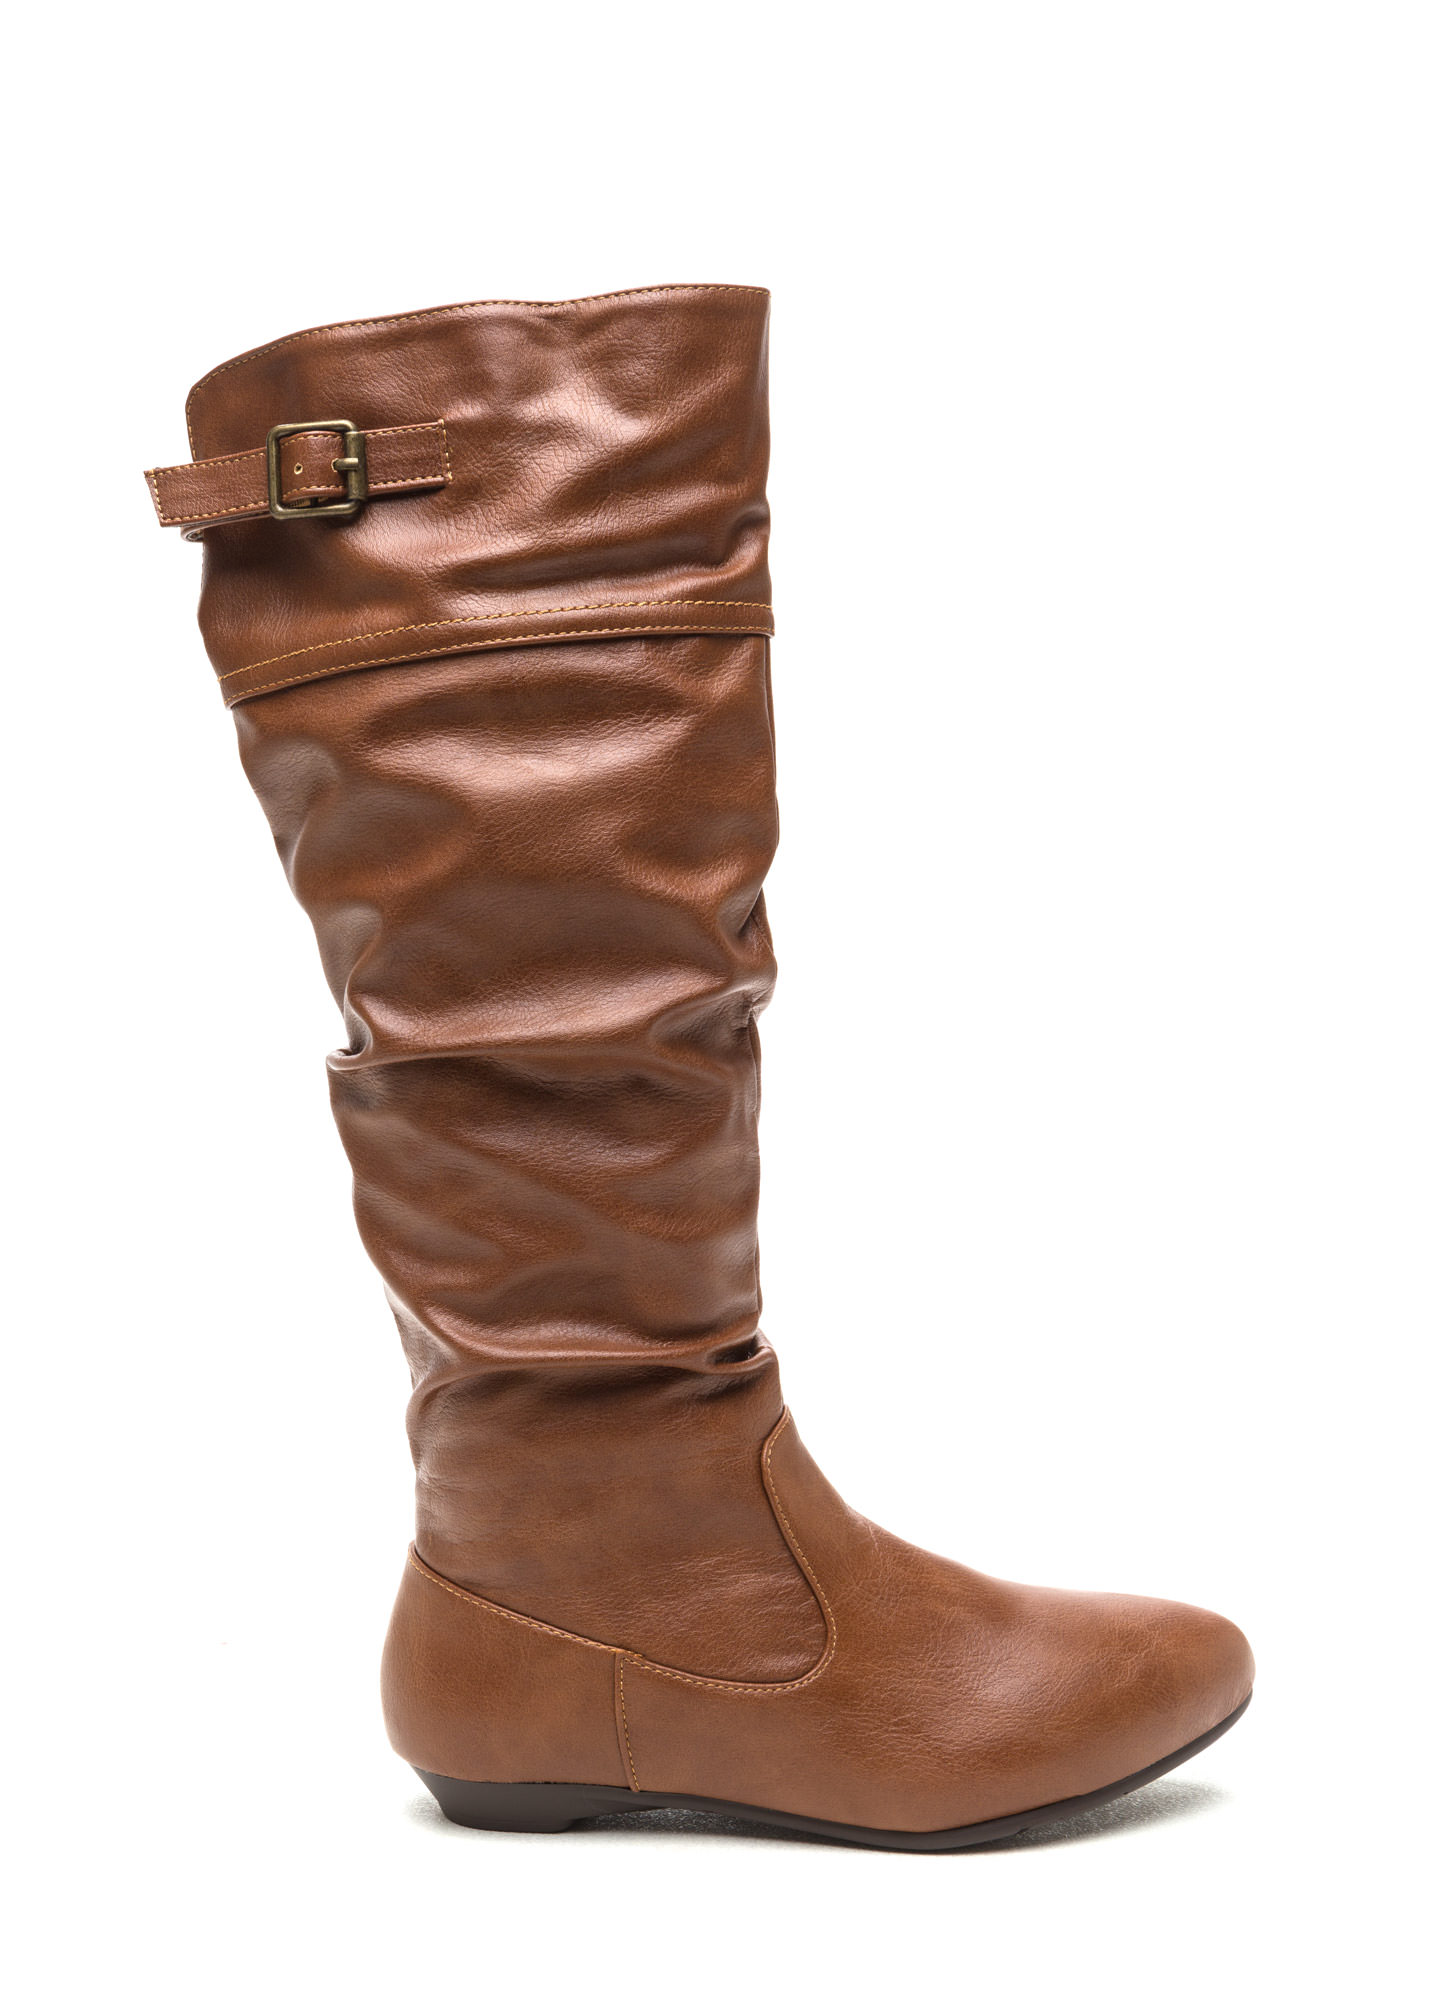 Strap 'Em Up Slouchy Knee-High Boots CHESTNUT